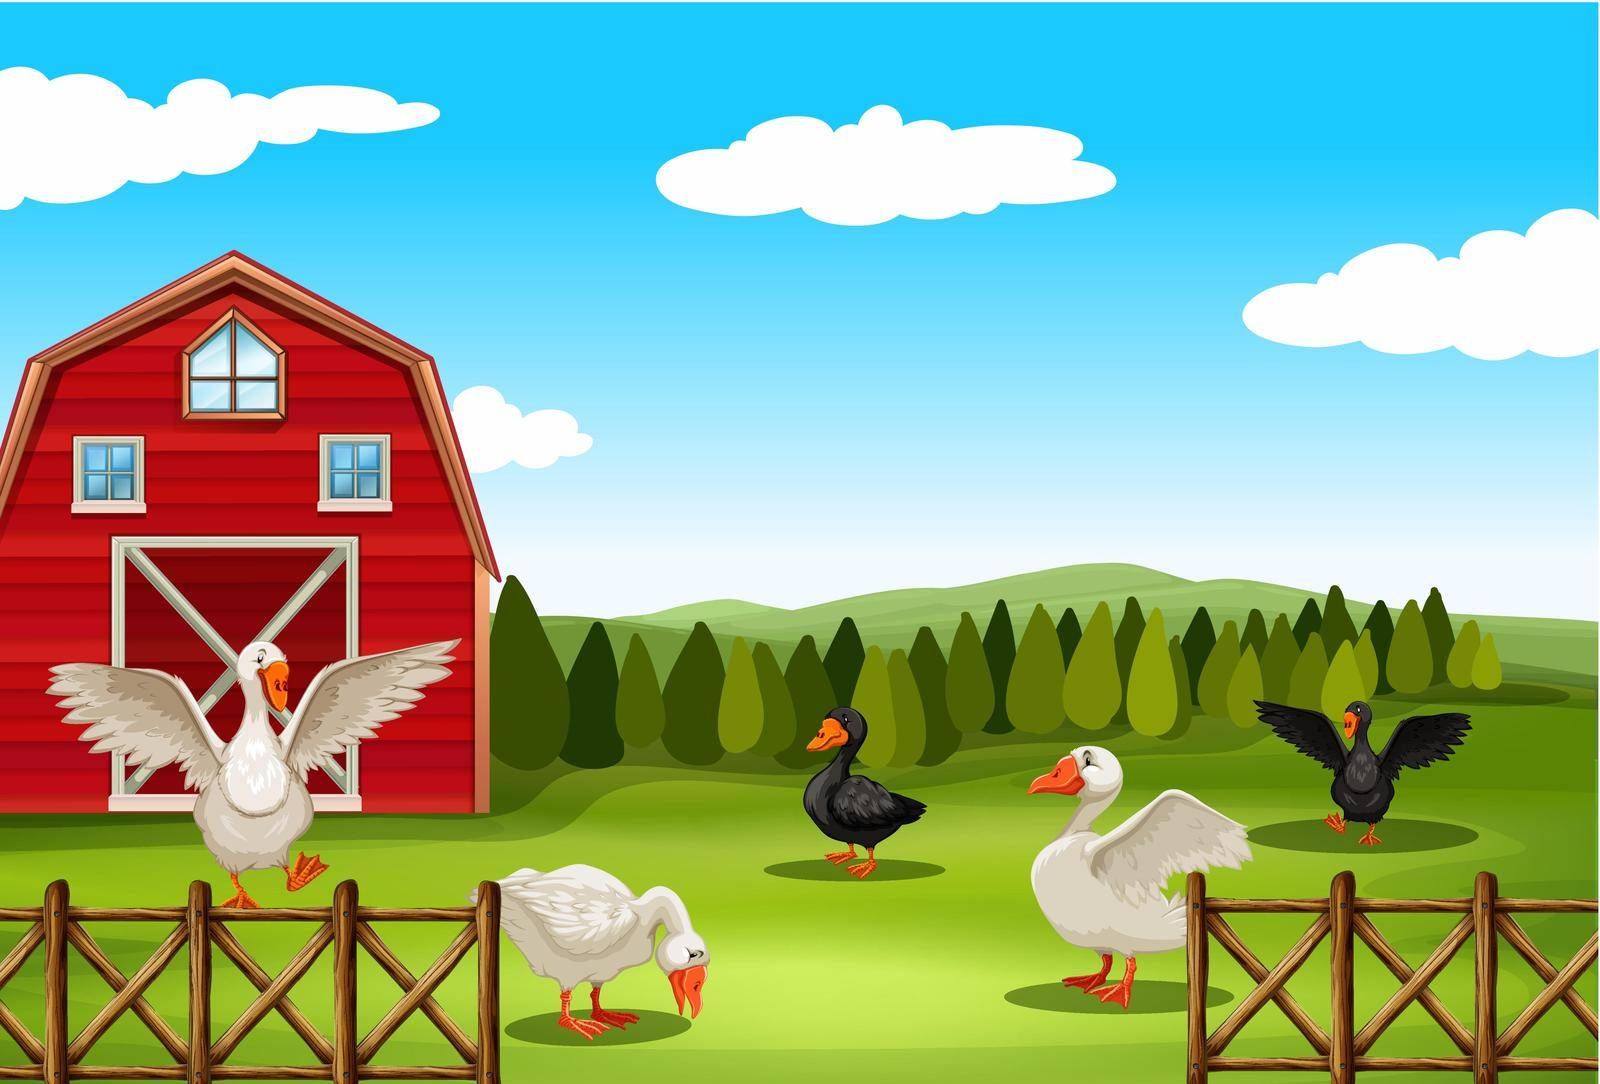 Geese living in the farmland